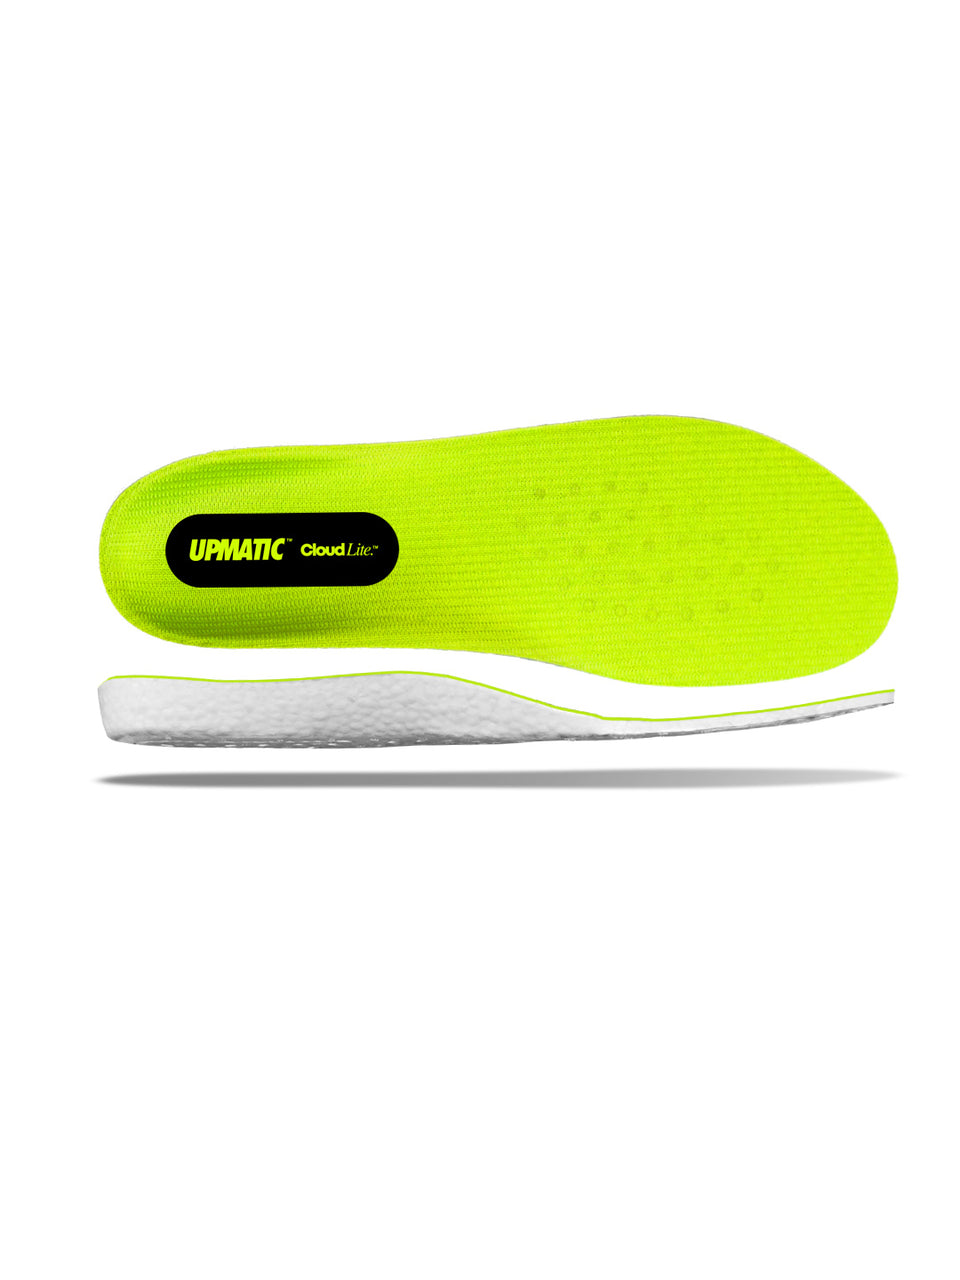 UPMATIC Cloudlite Supercharged Insoles